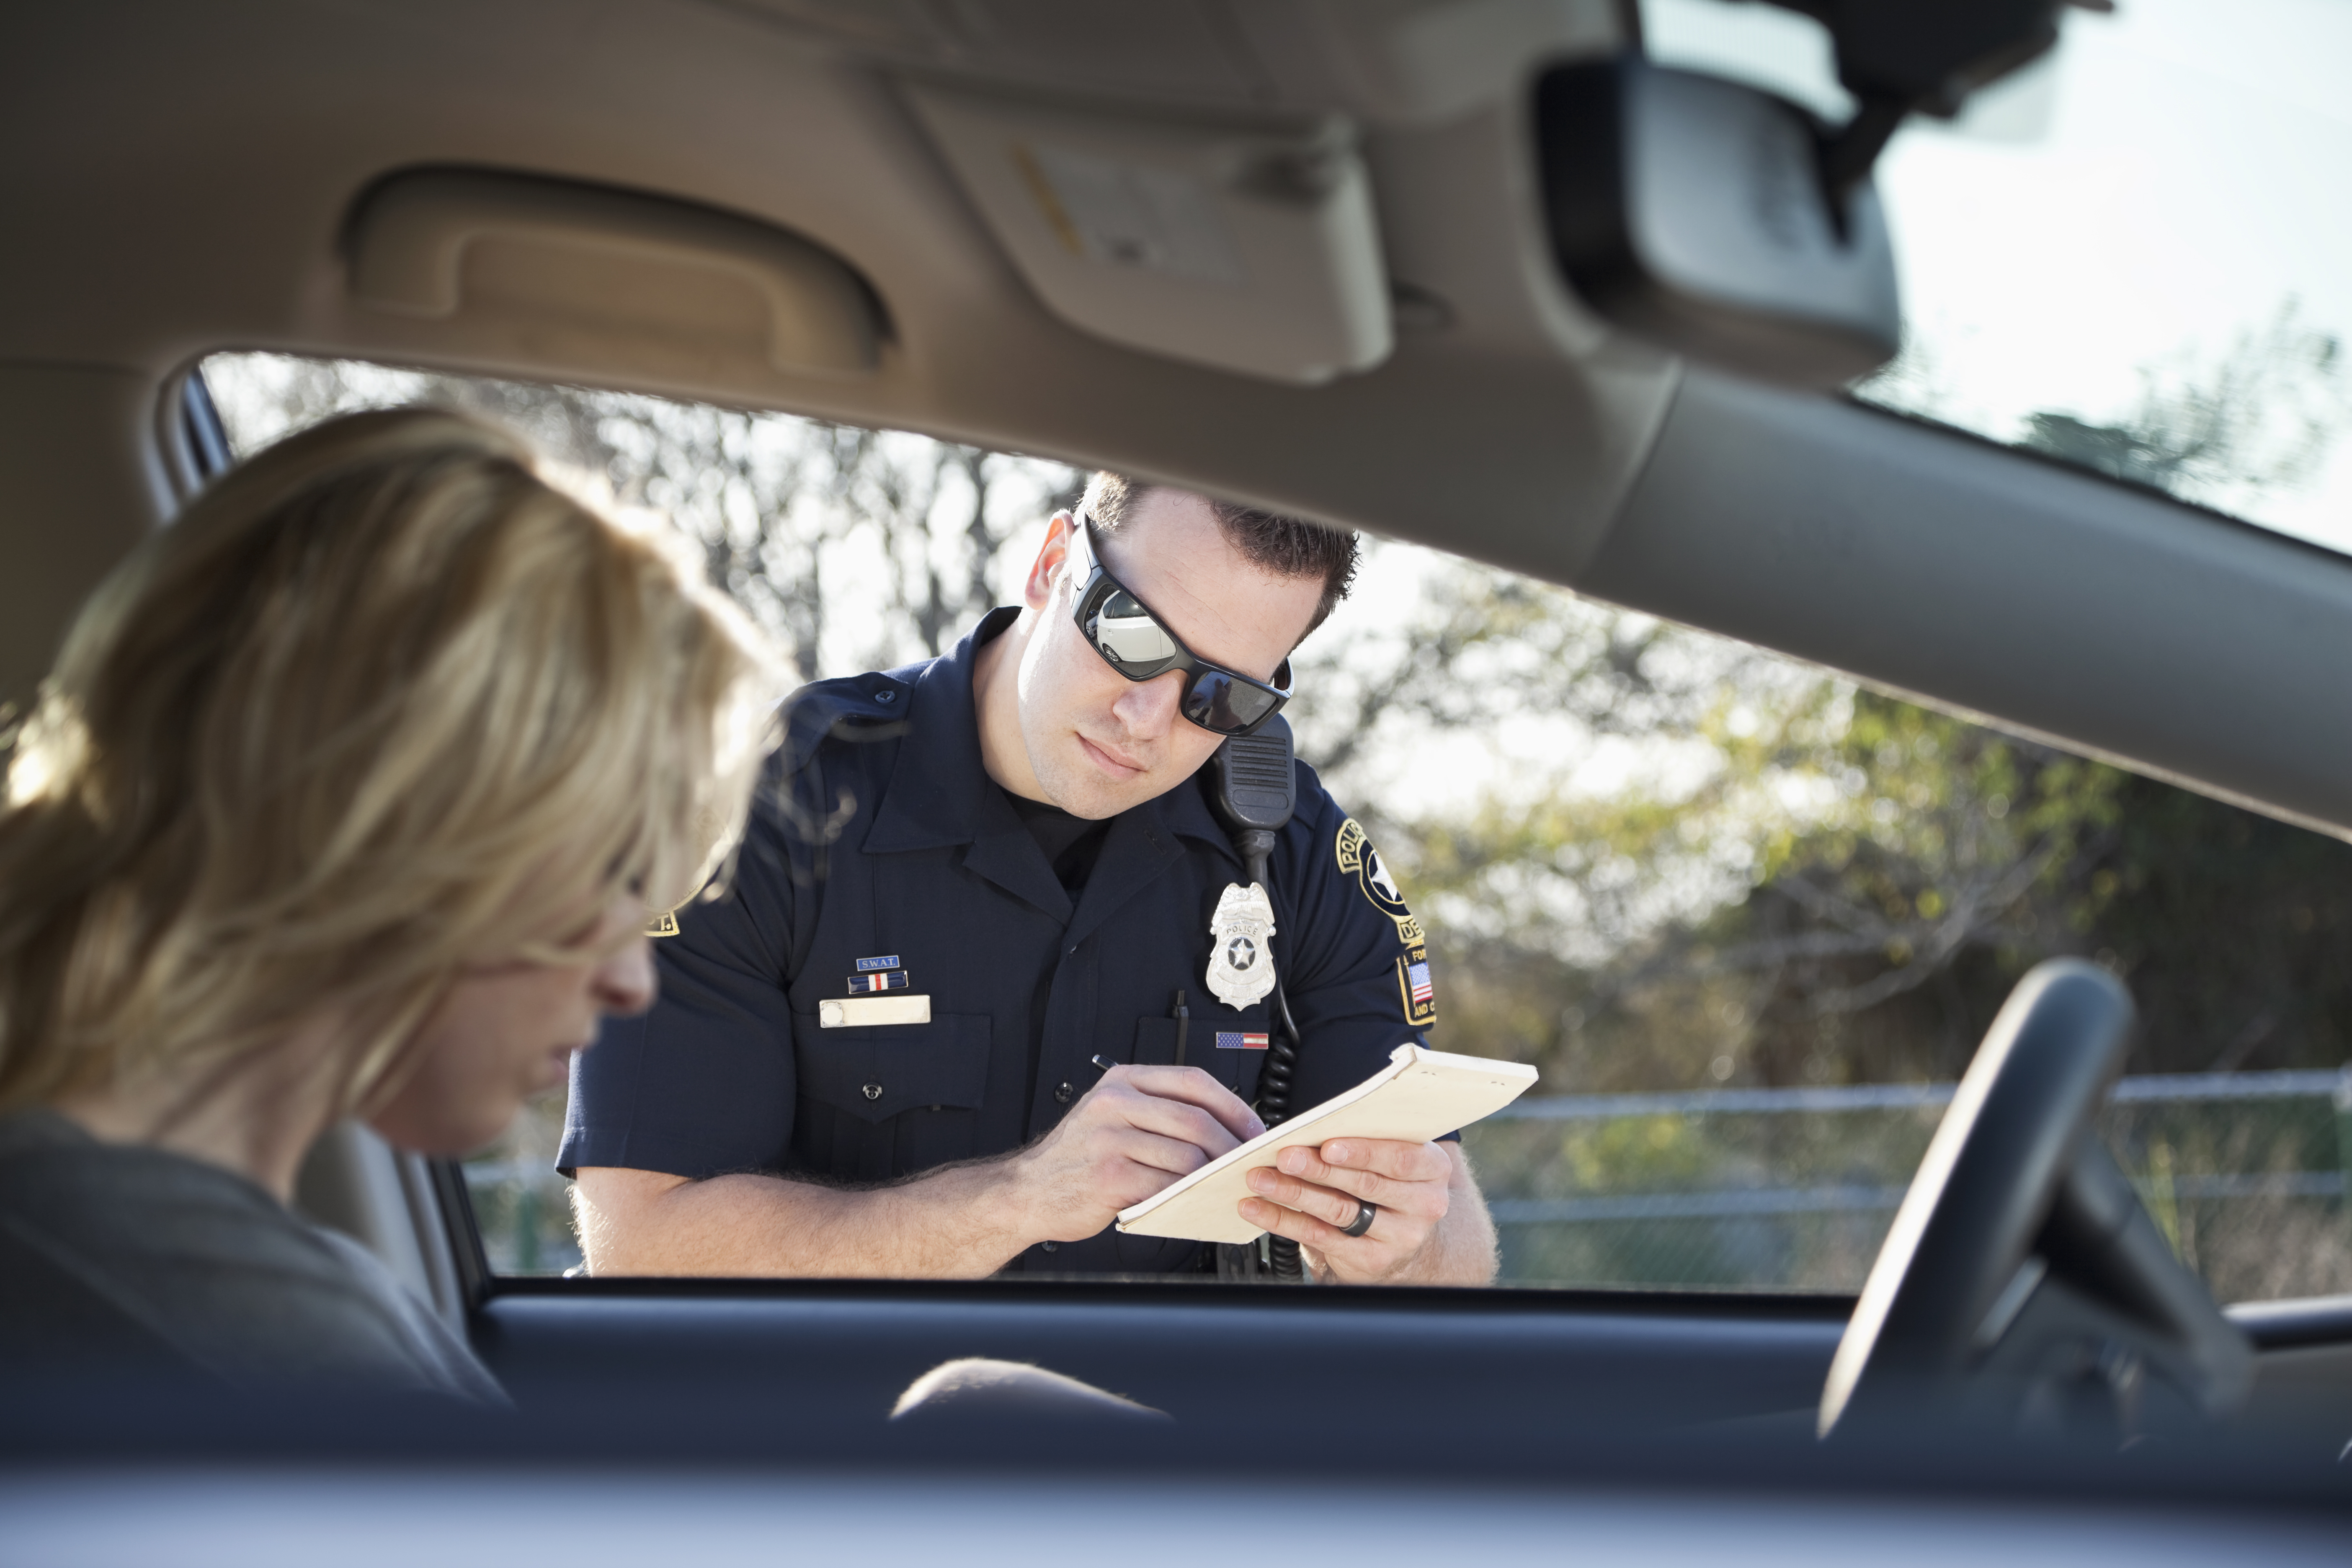 How To Fight A Speeding Ticket >> What To Do After You Get A Speeding Ticket Nerdwallet